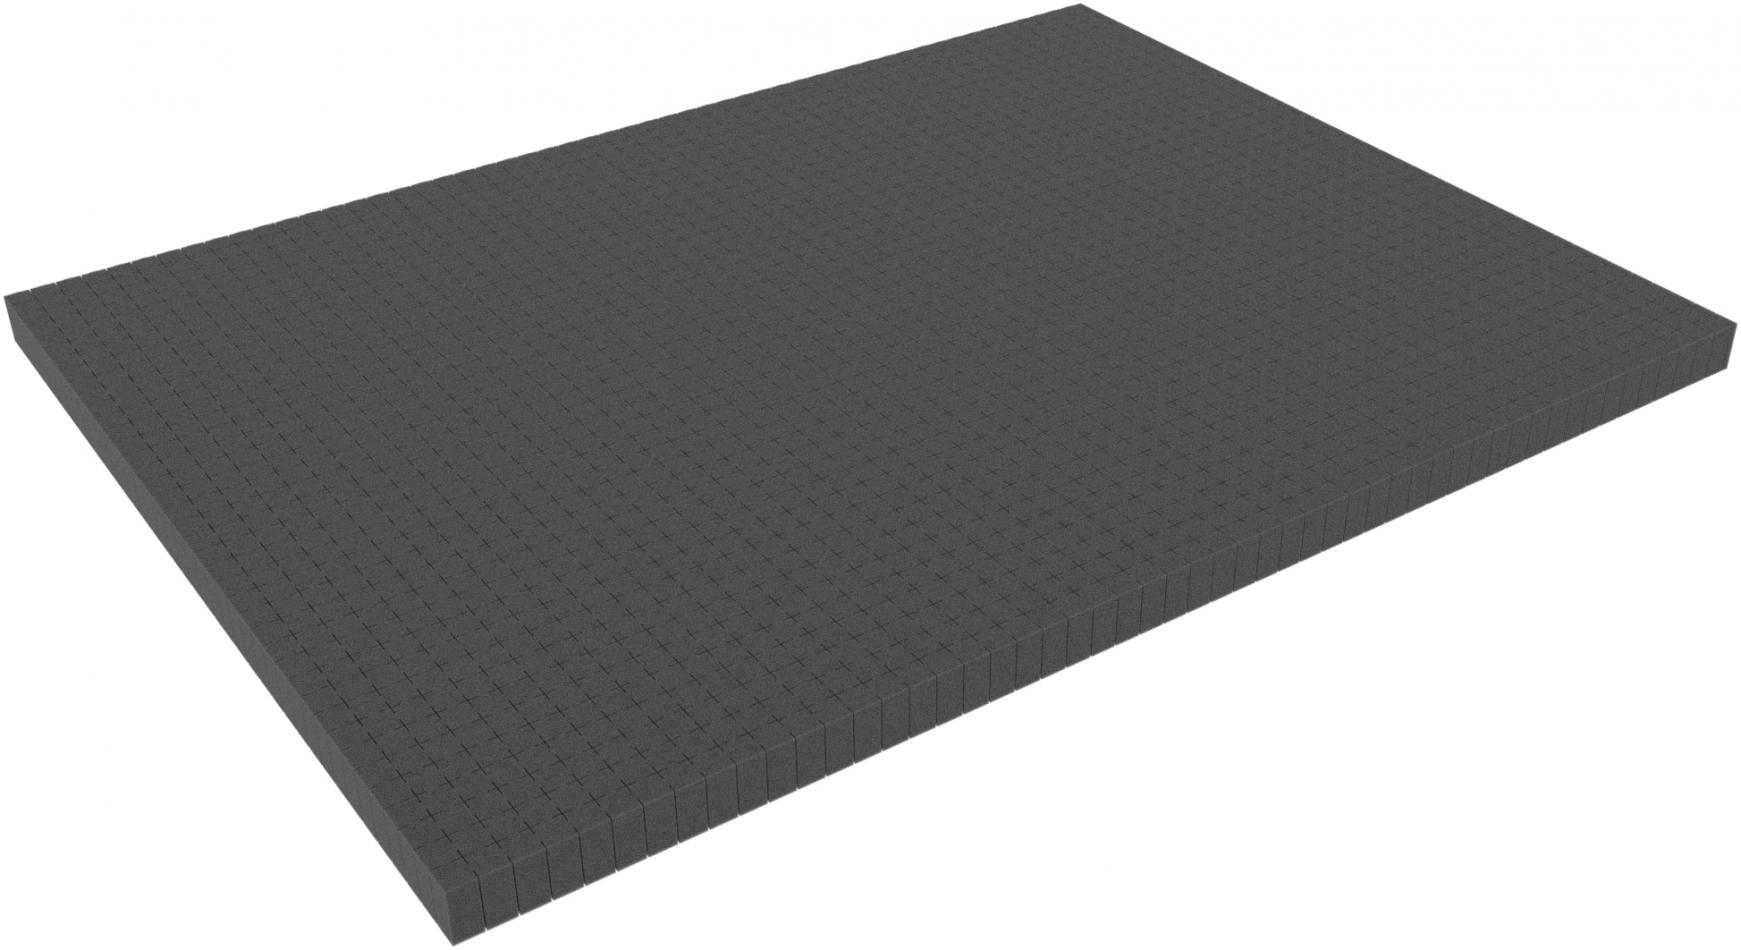 800 mm x 600 mm x 100 mm - Raster 15 mm - Pick and Pluck / Pre-Cubed foam tray